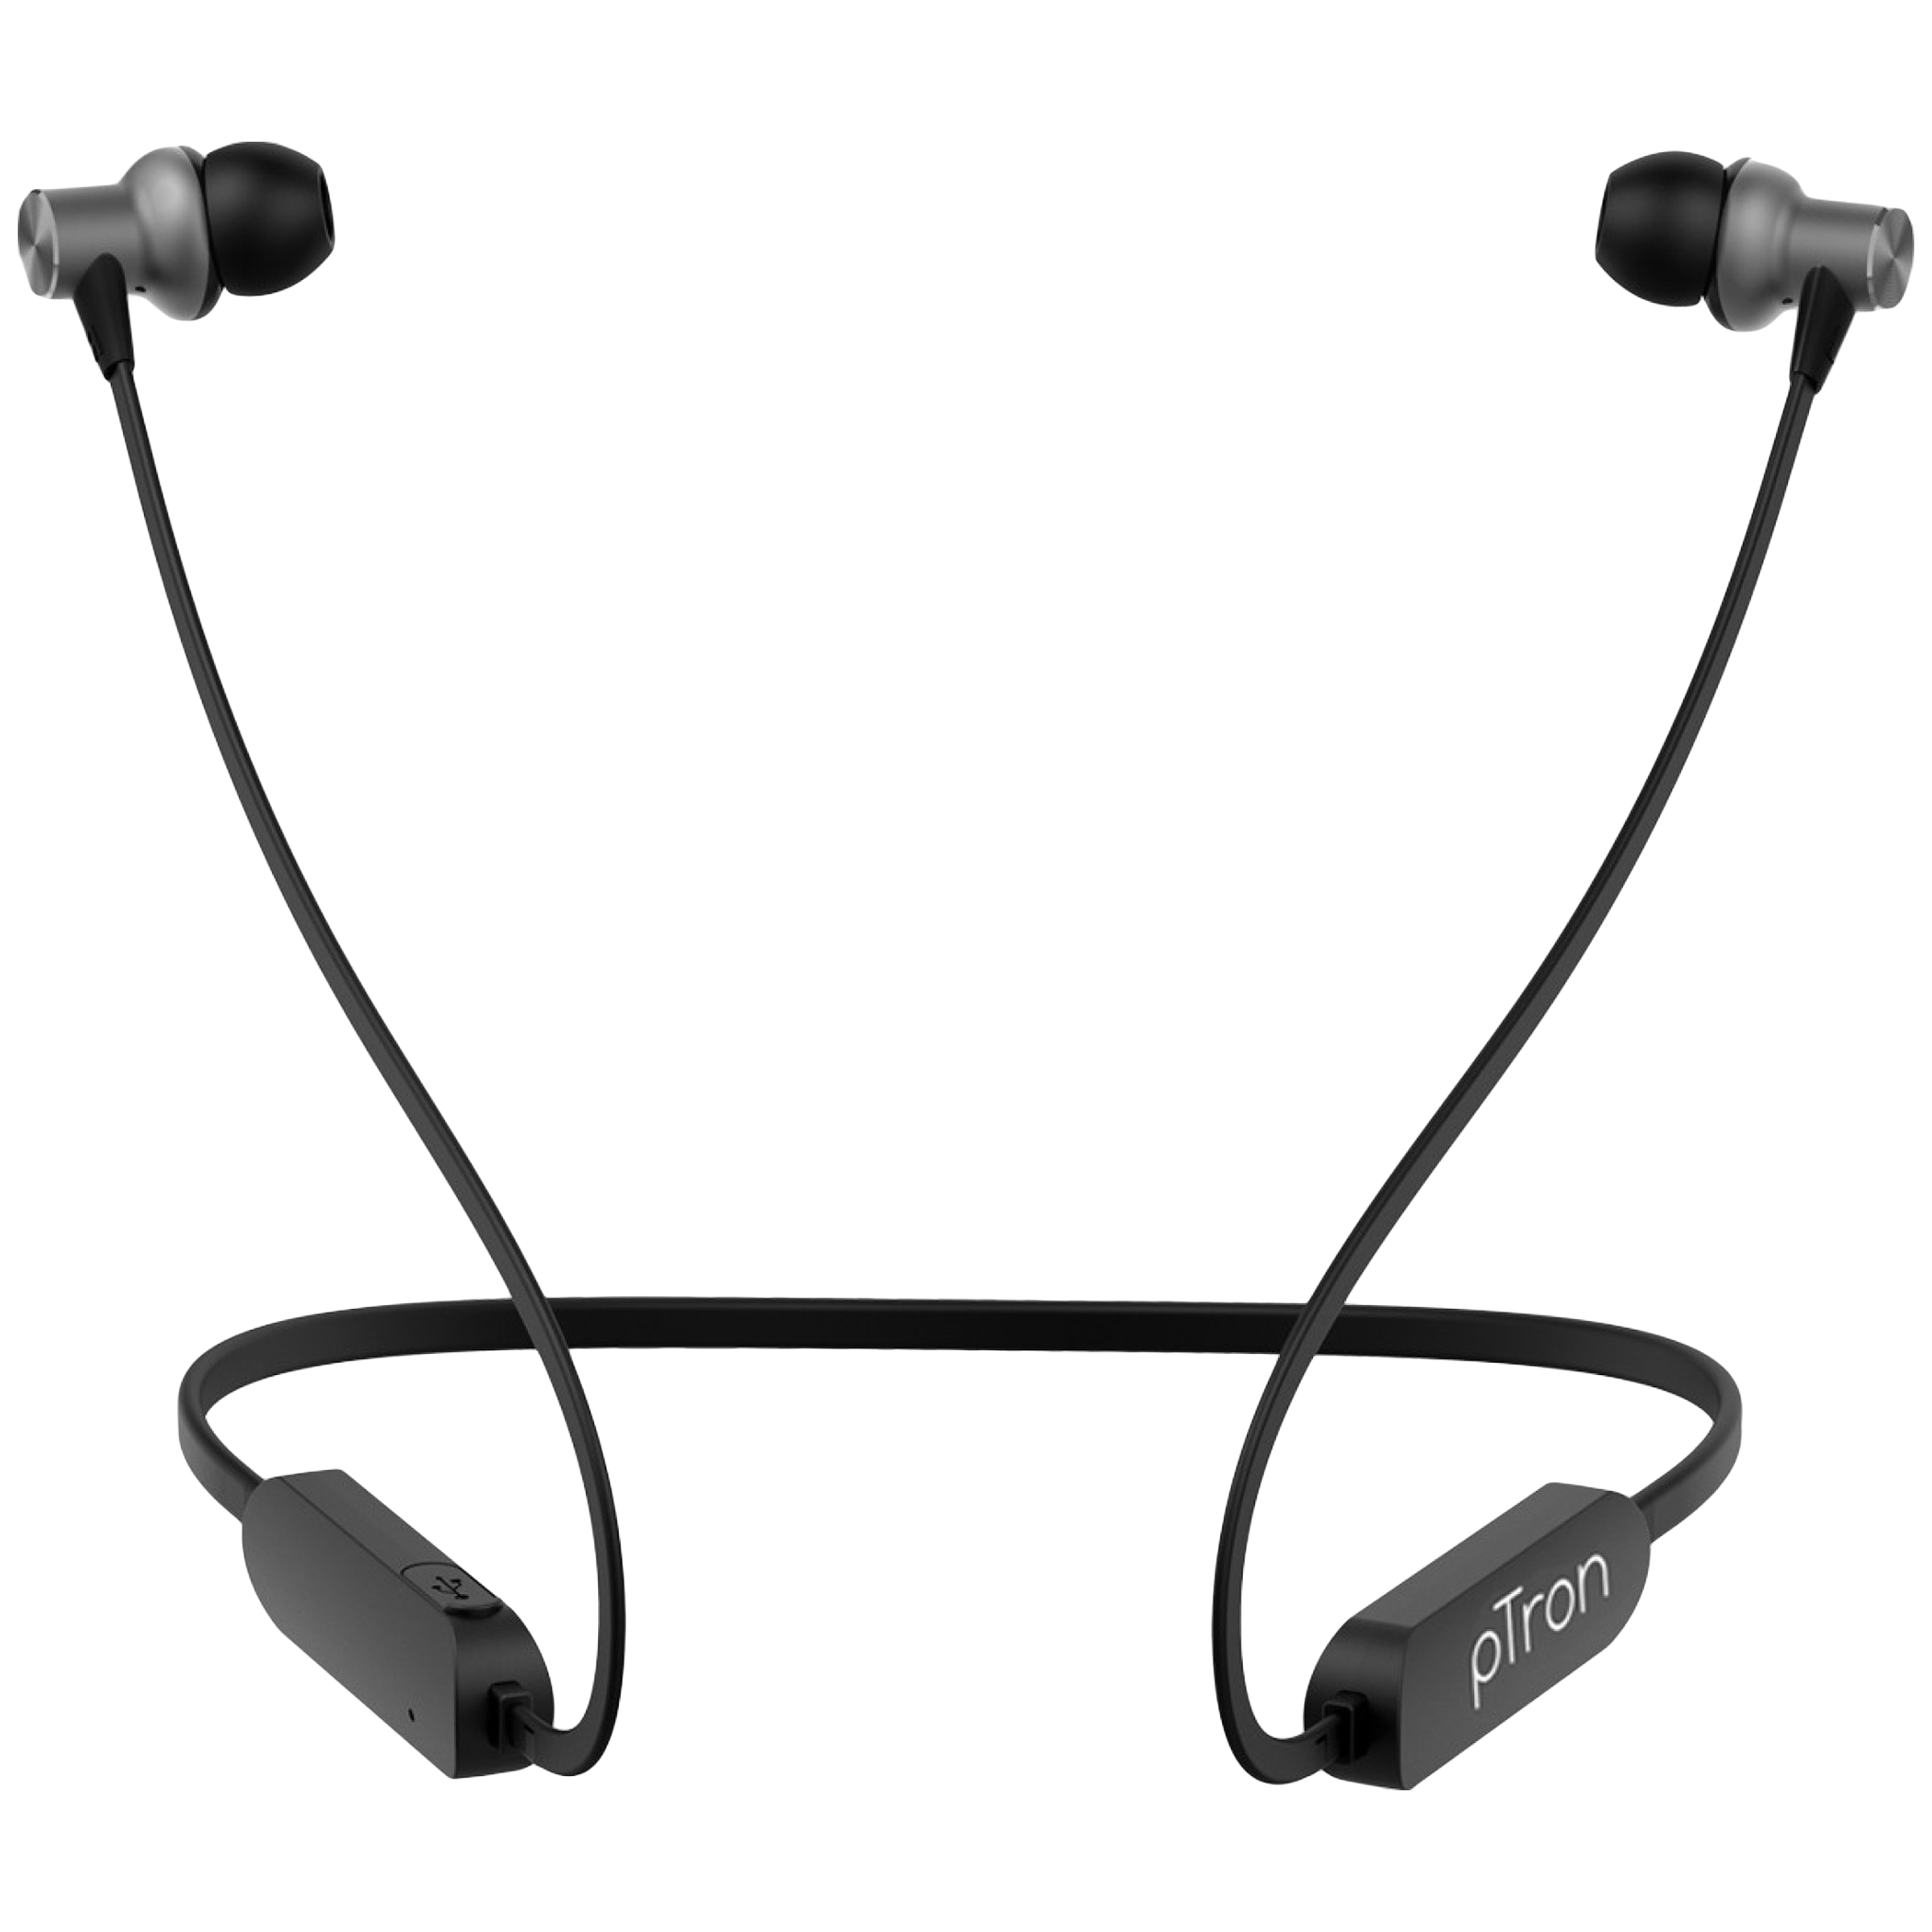 pTron Avento Classic In-Ear Passive Noise Cancellation Wireless Earphone with Mic (Bluetooth 5.0, Magnetic Locking, 140317896, Black/Grey)_1